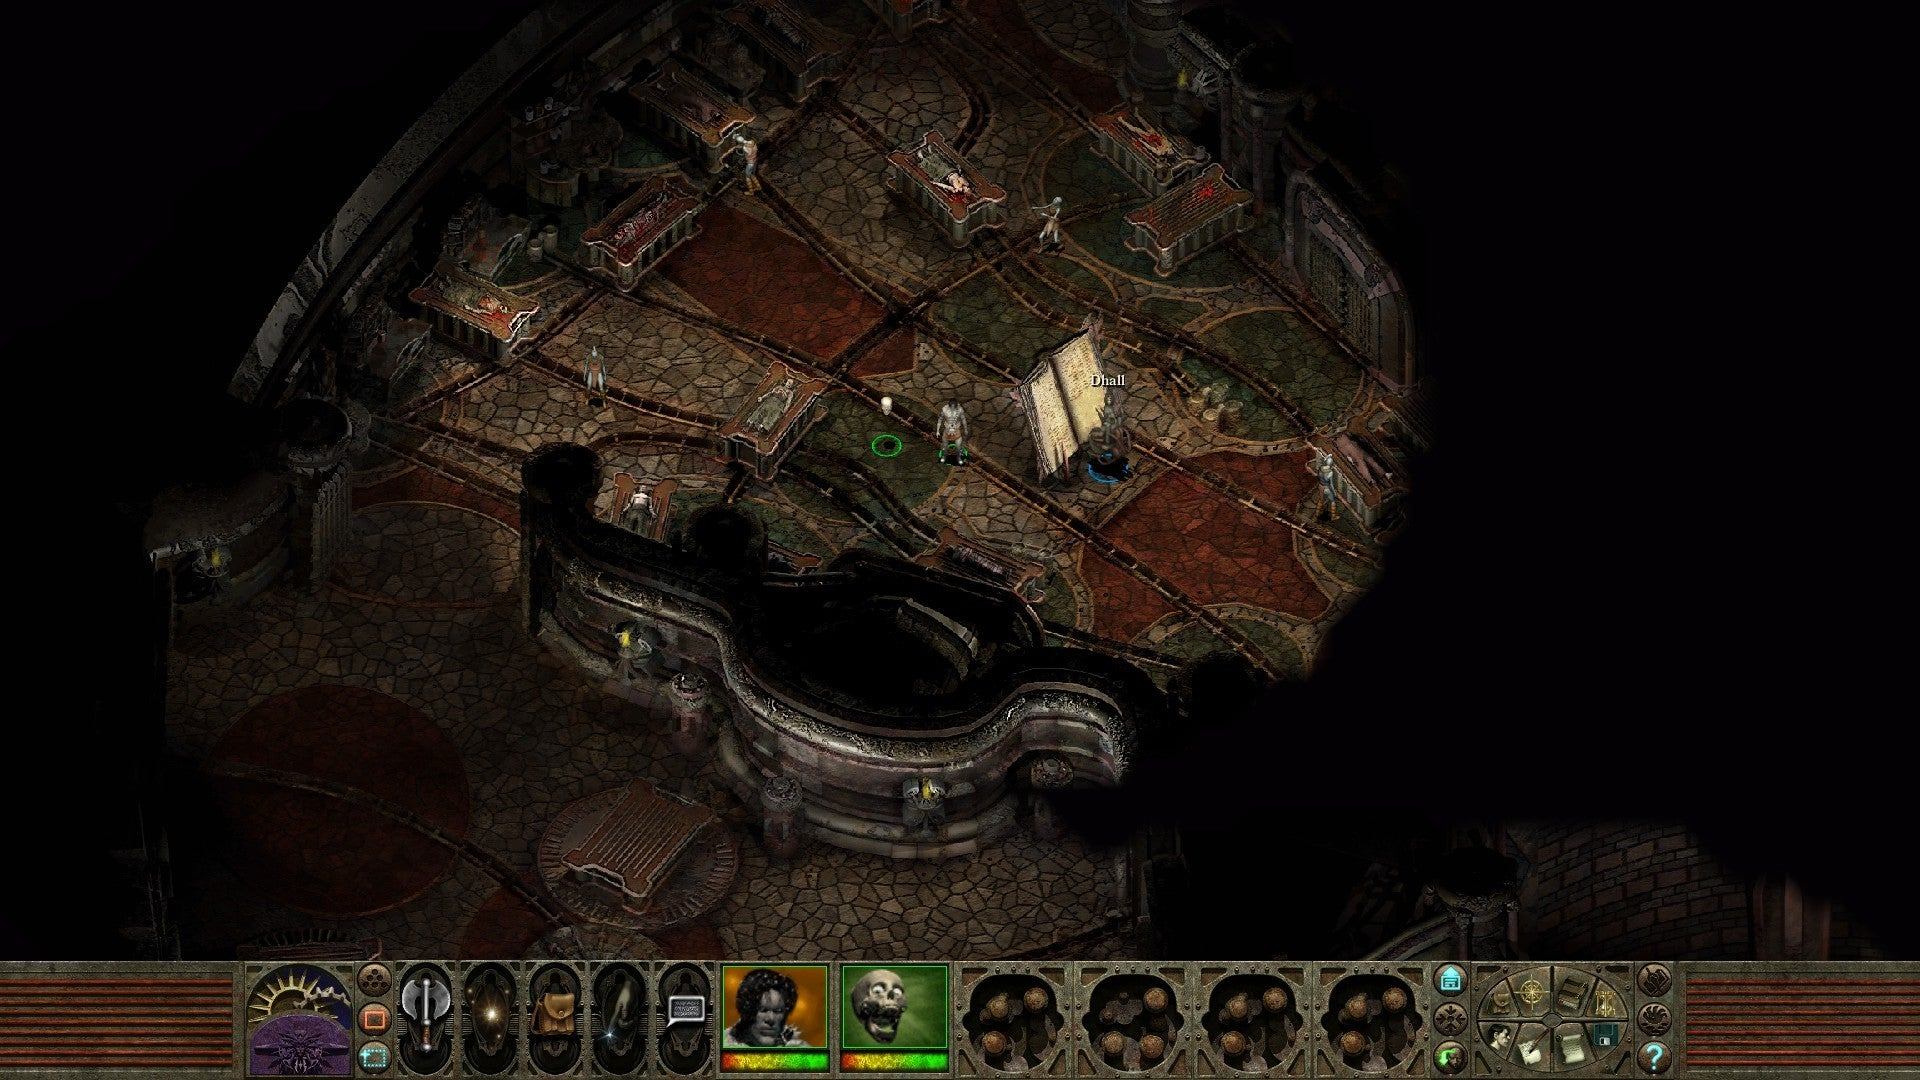 Welcome to this Getting Started Guide for Planescape Torment Enhanced Edition! Today I give you a few basic starter tips for the game, things that will ease the transition from